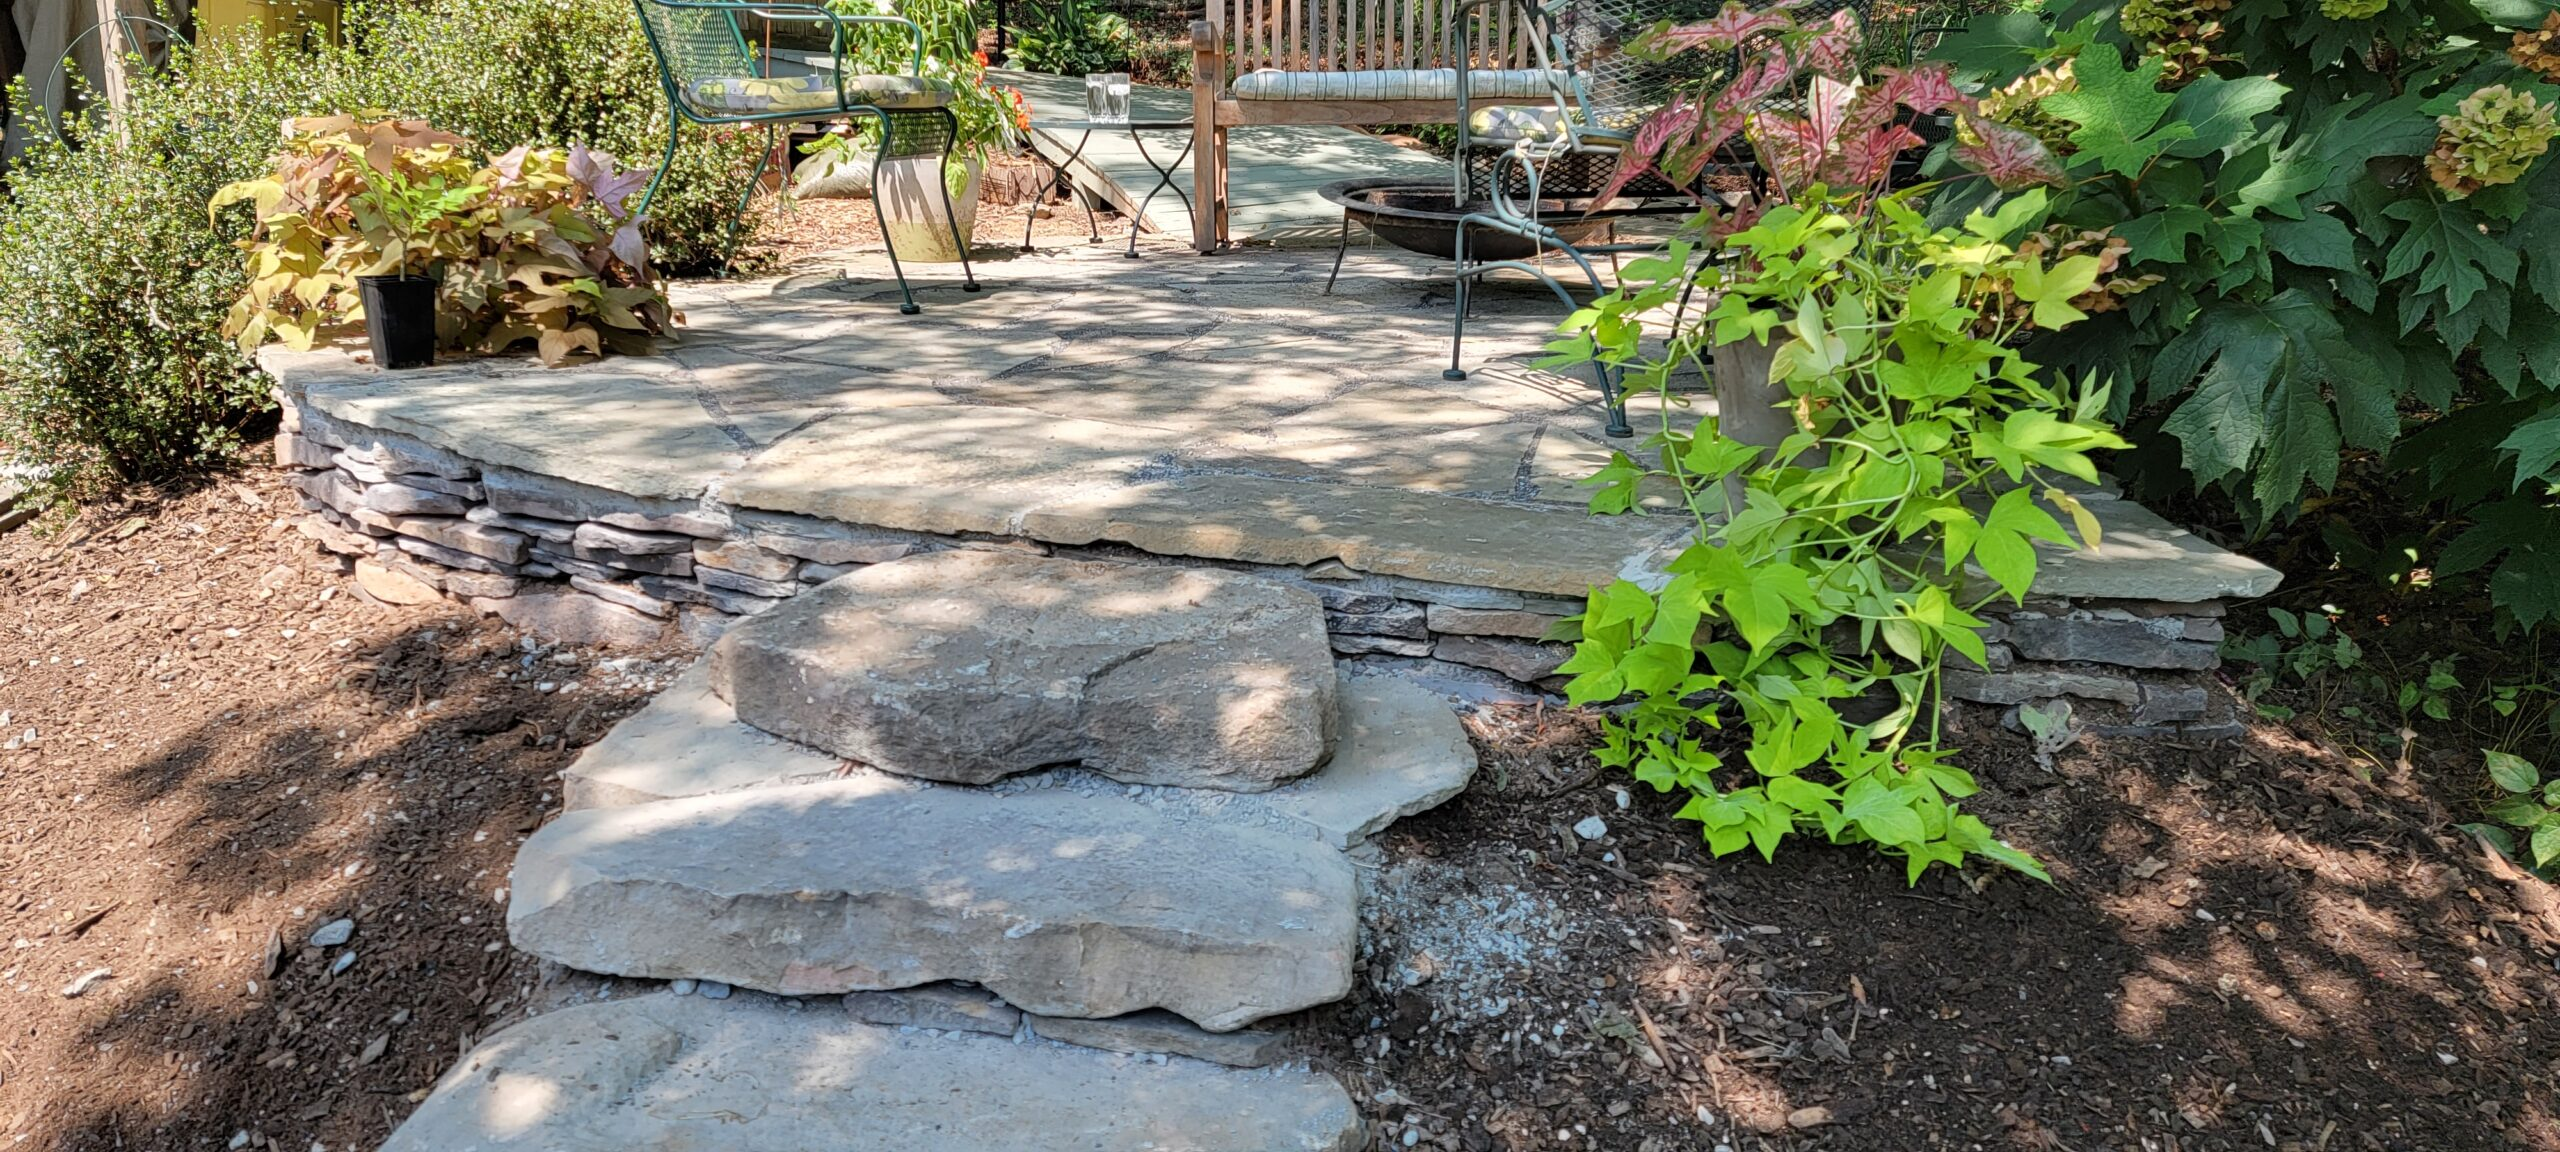 Large boulders leading up to Cantwell's New Firepit